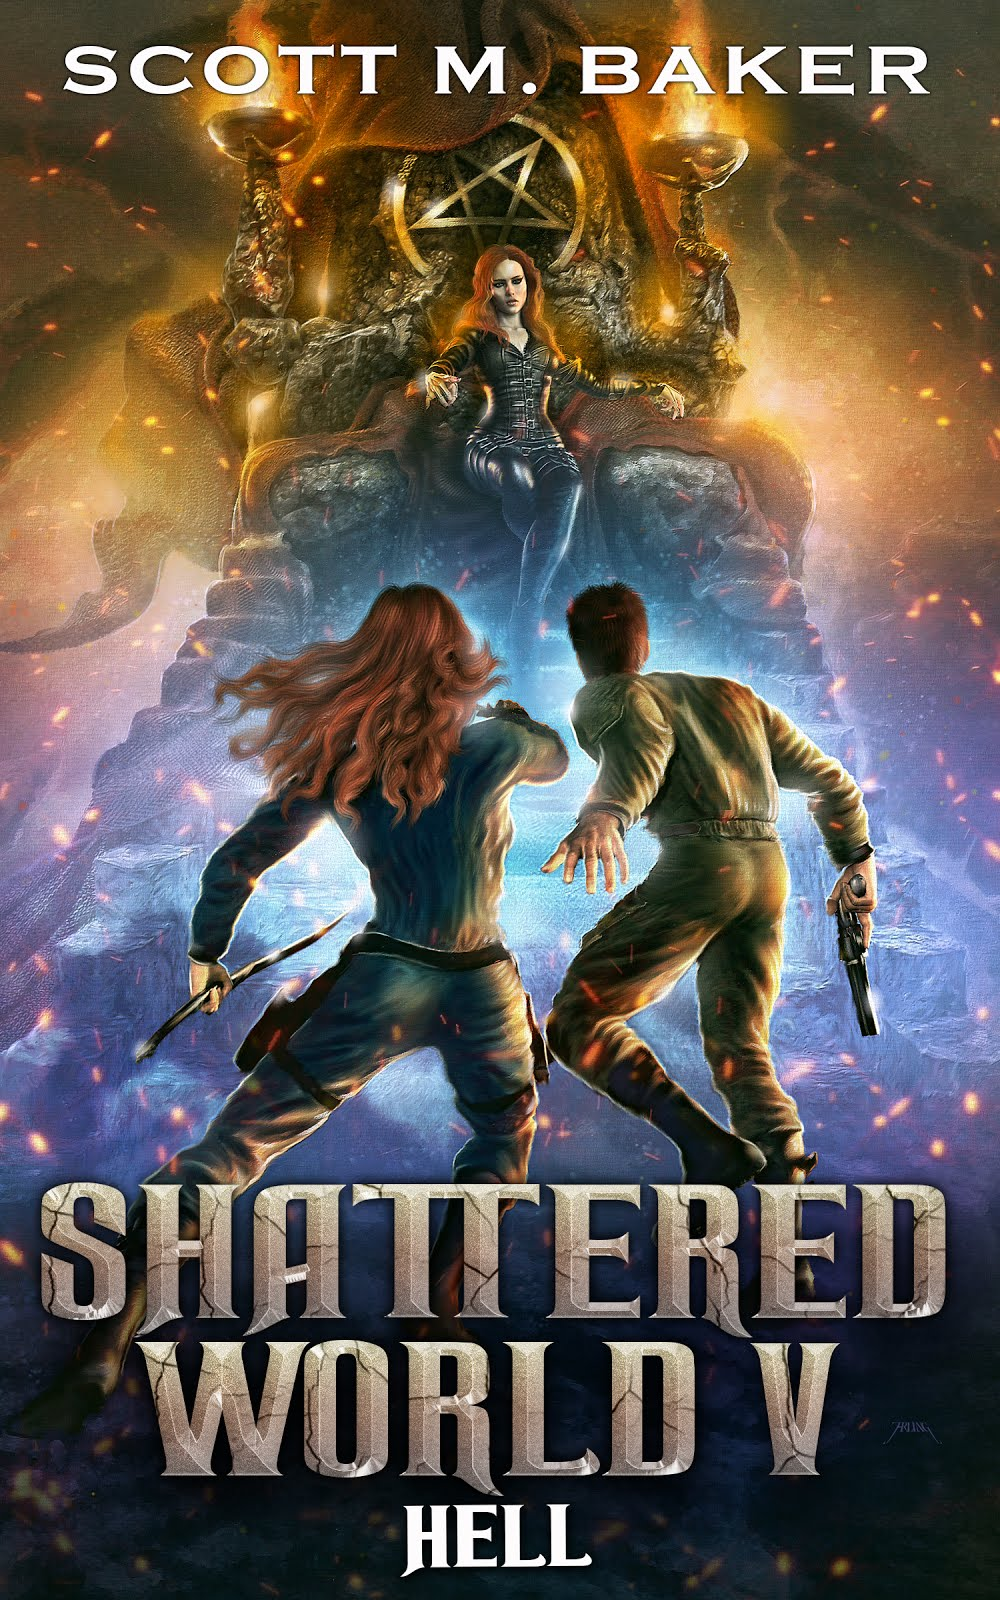 Shattered World V: Hell